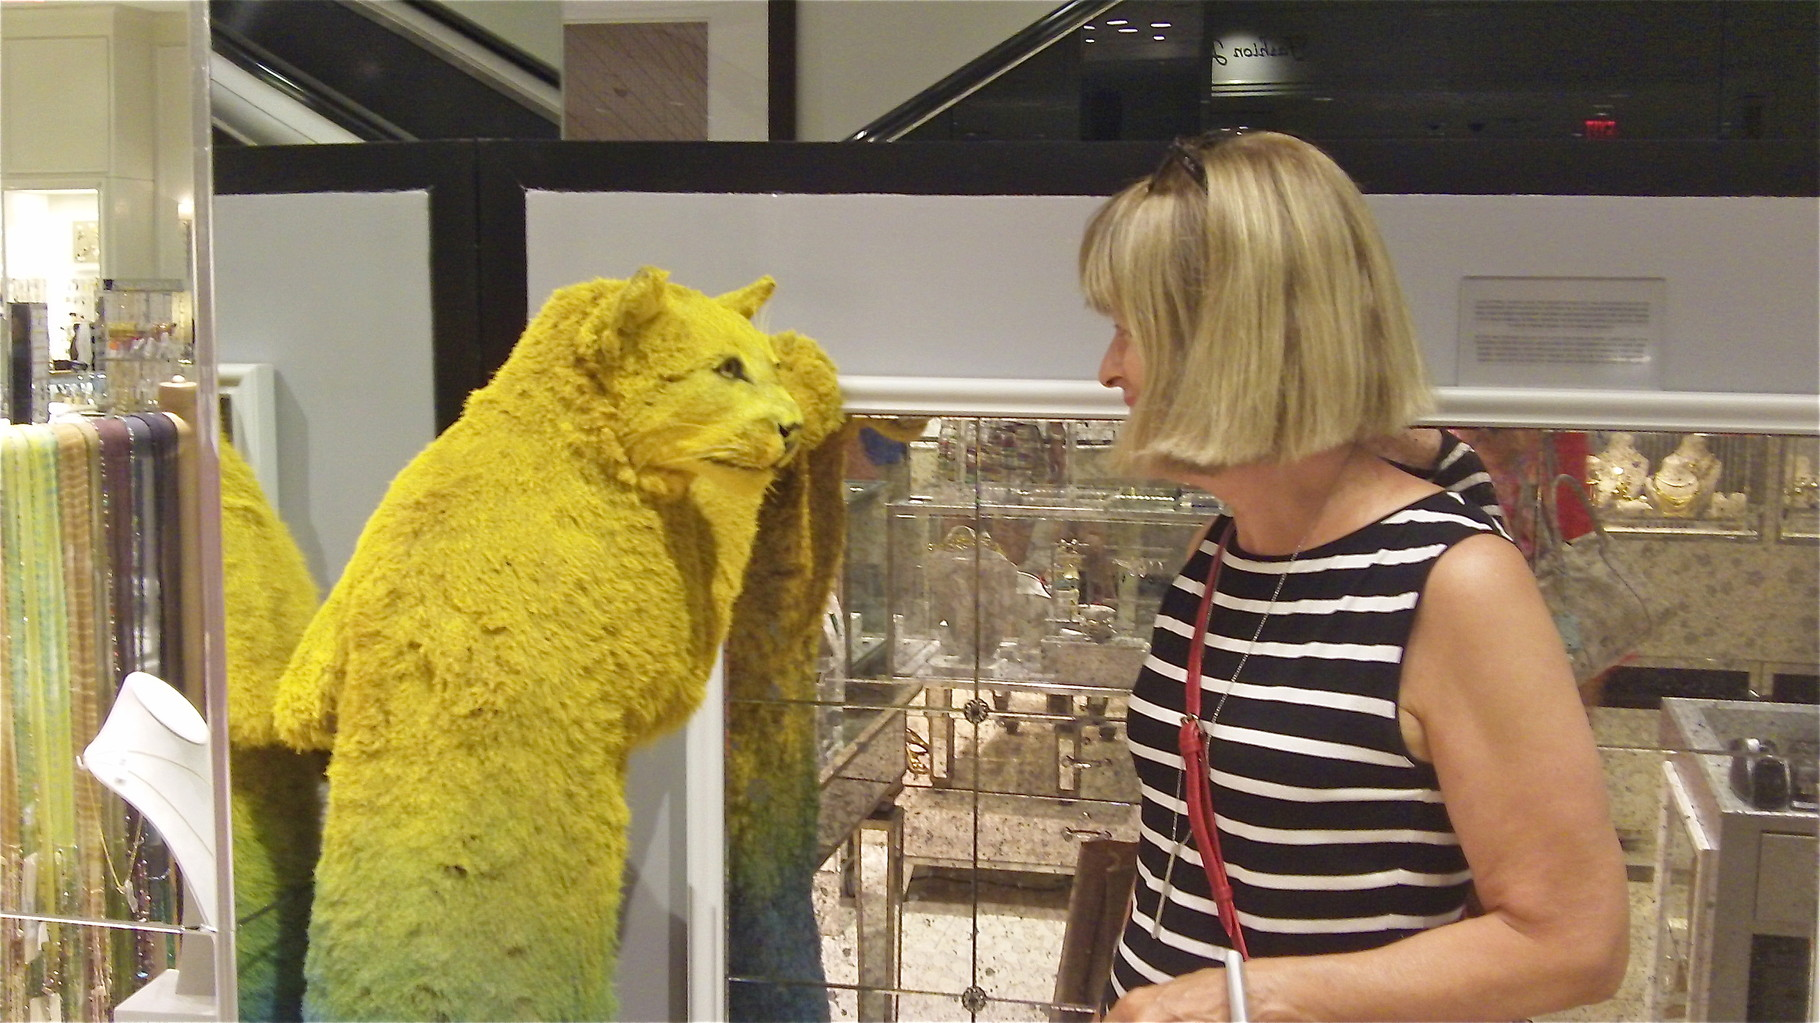 Nancy bonds with a cat at Bloomingdale's